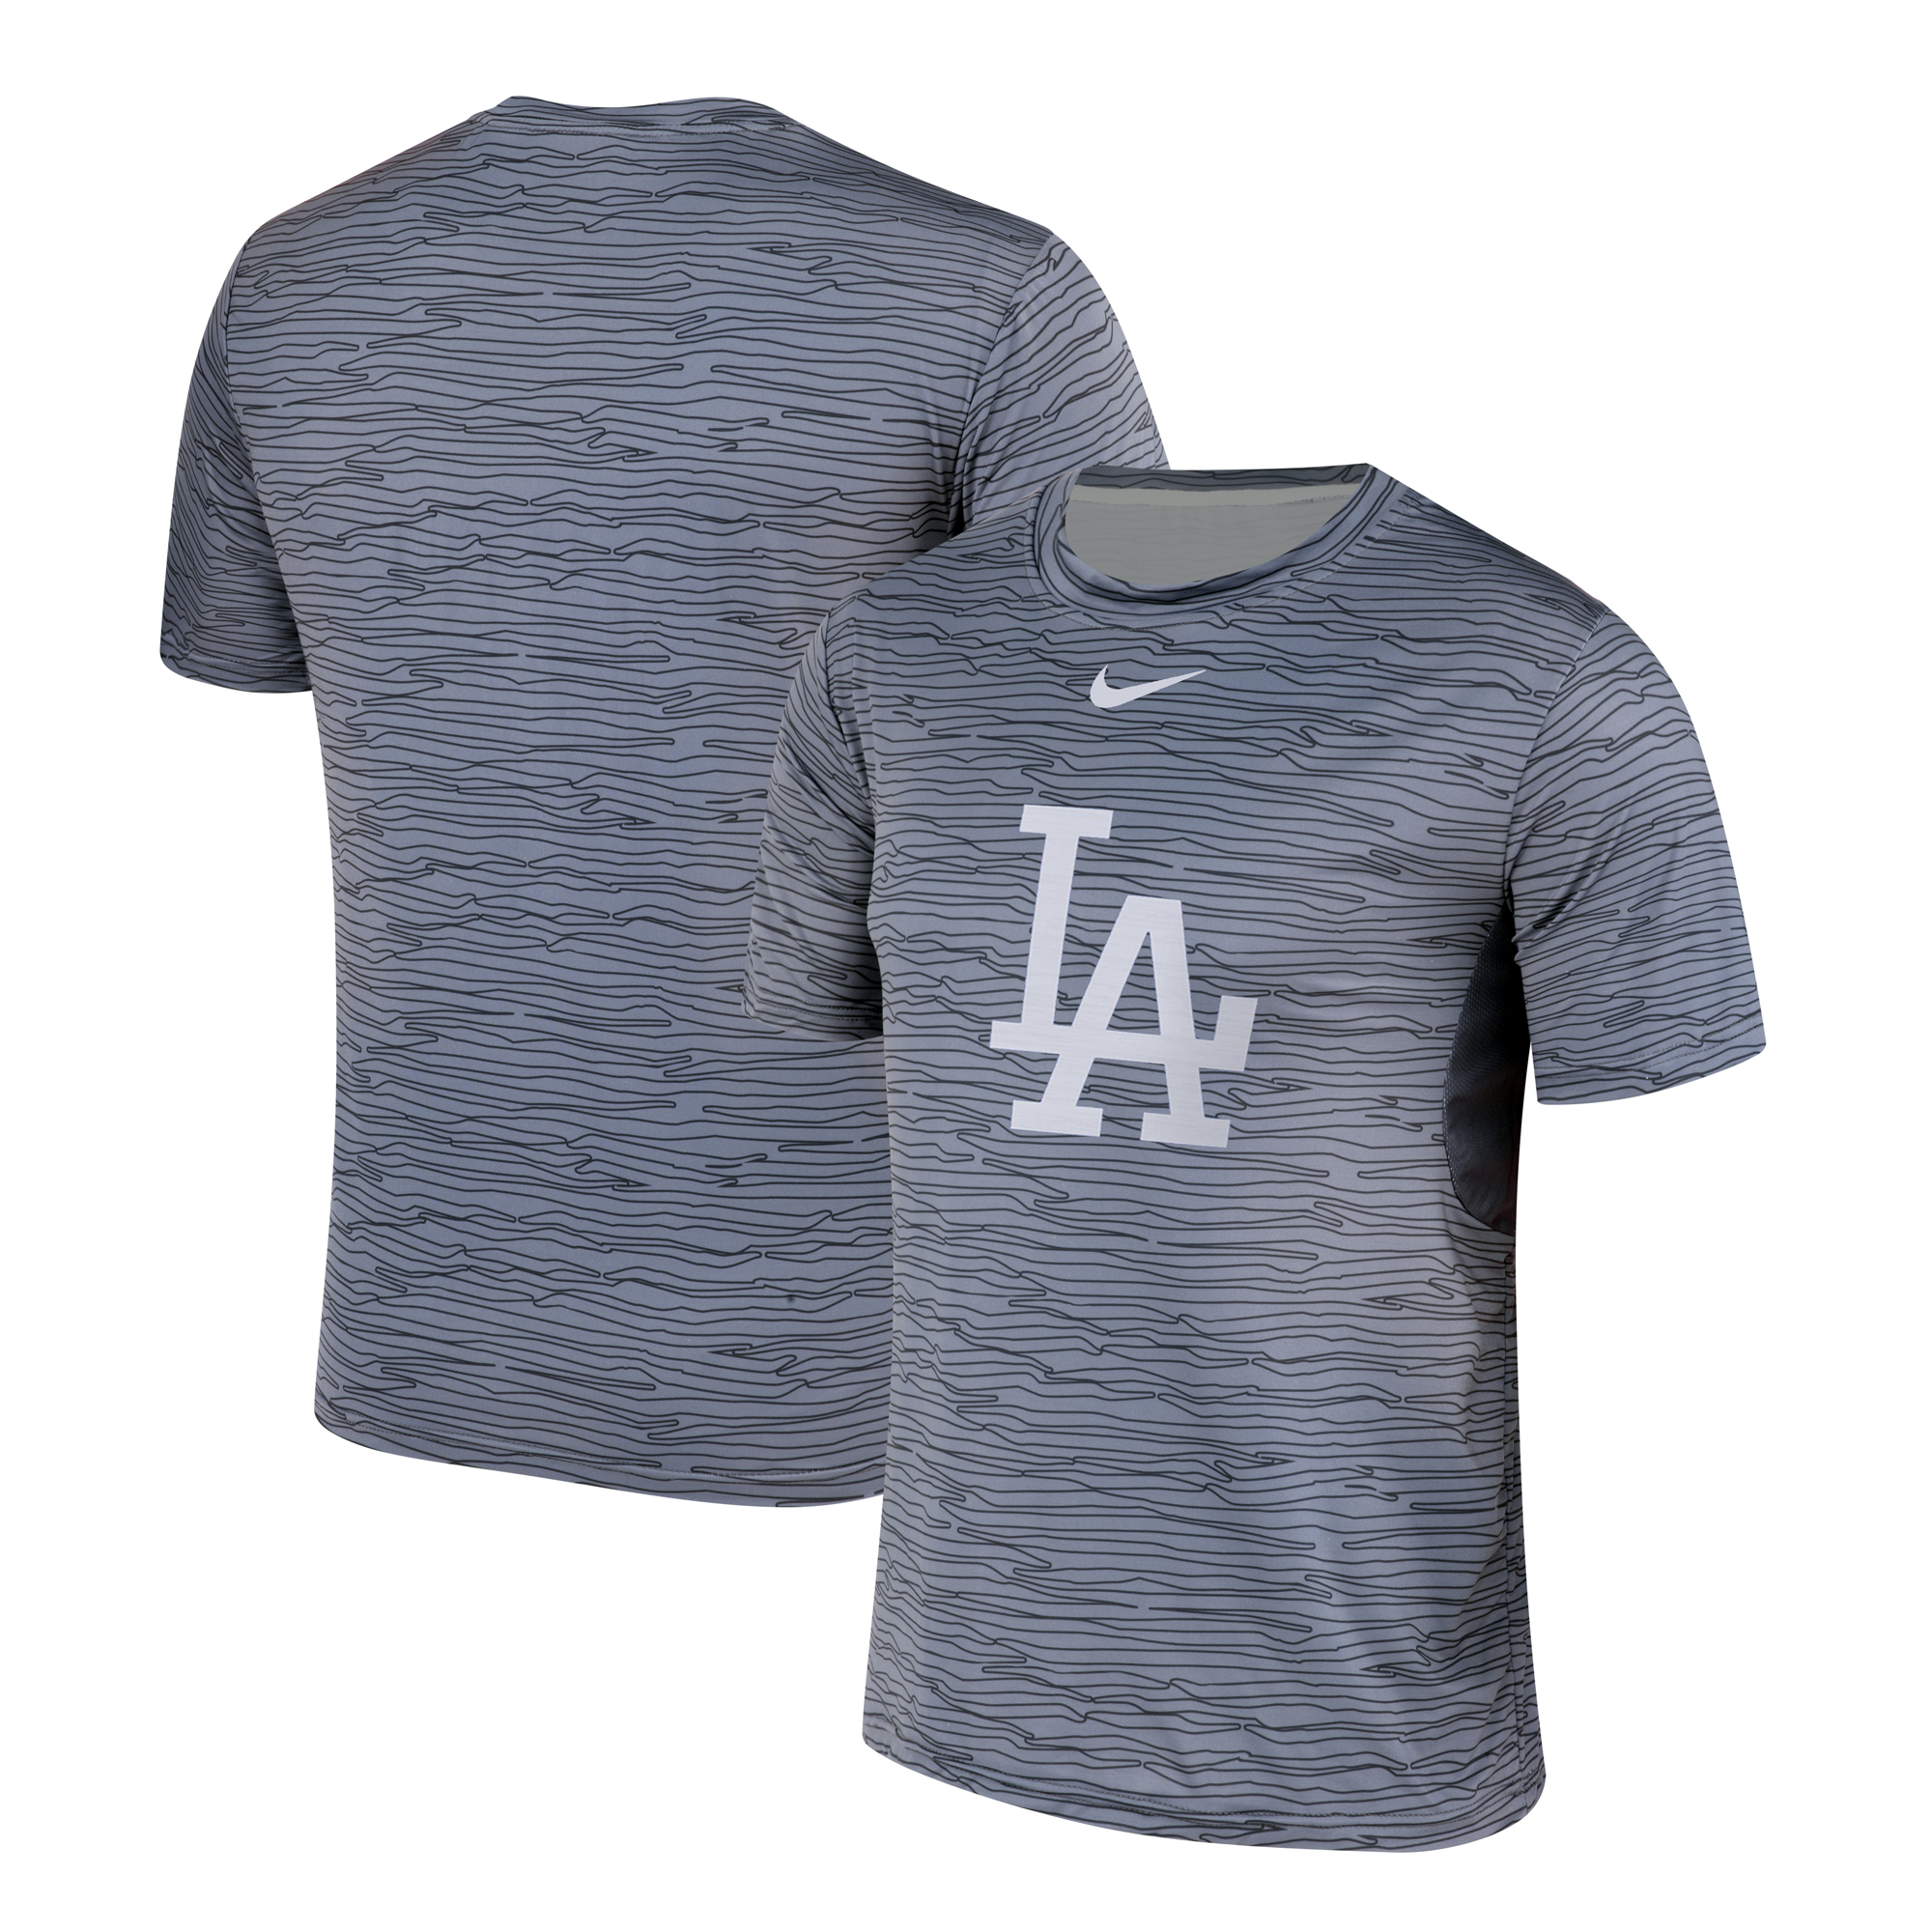 Nike Los Angeles Dodgers Gray Black Striped Logo Performance T-Shirt